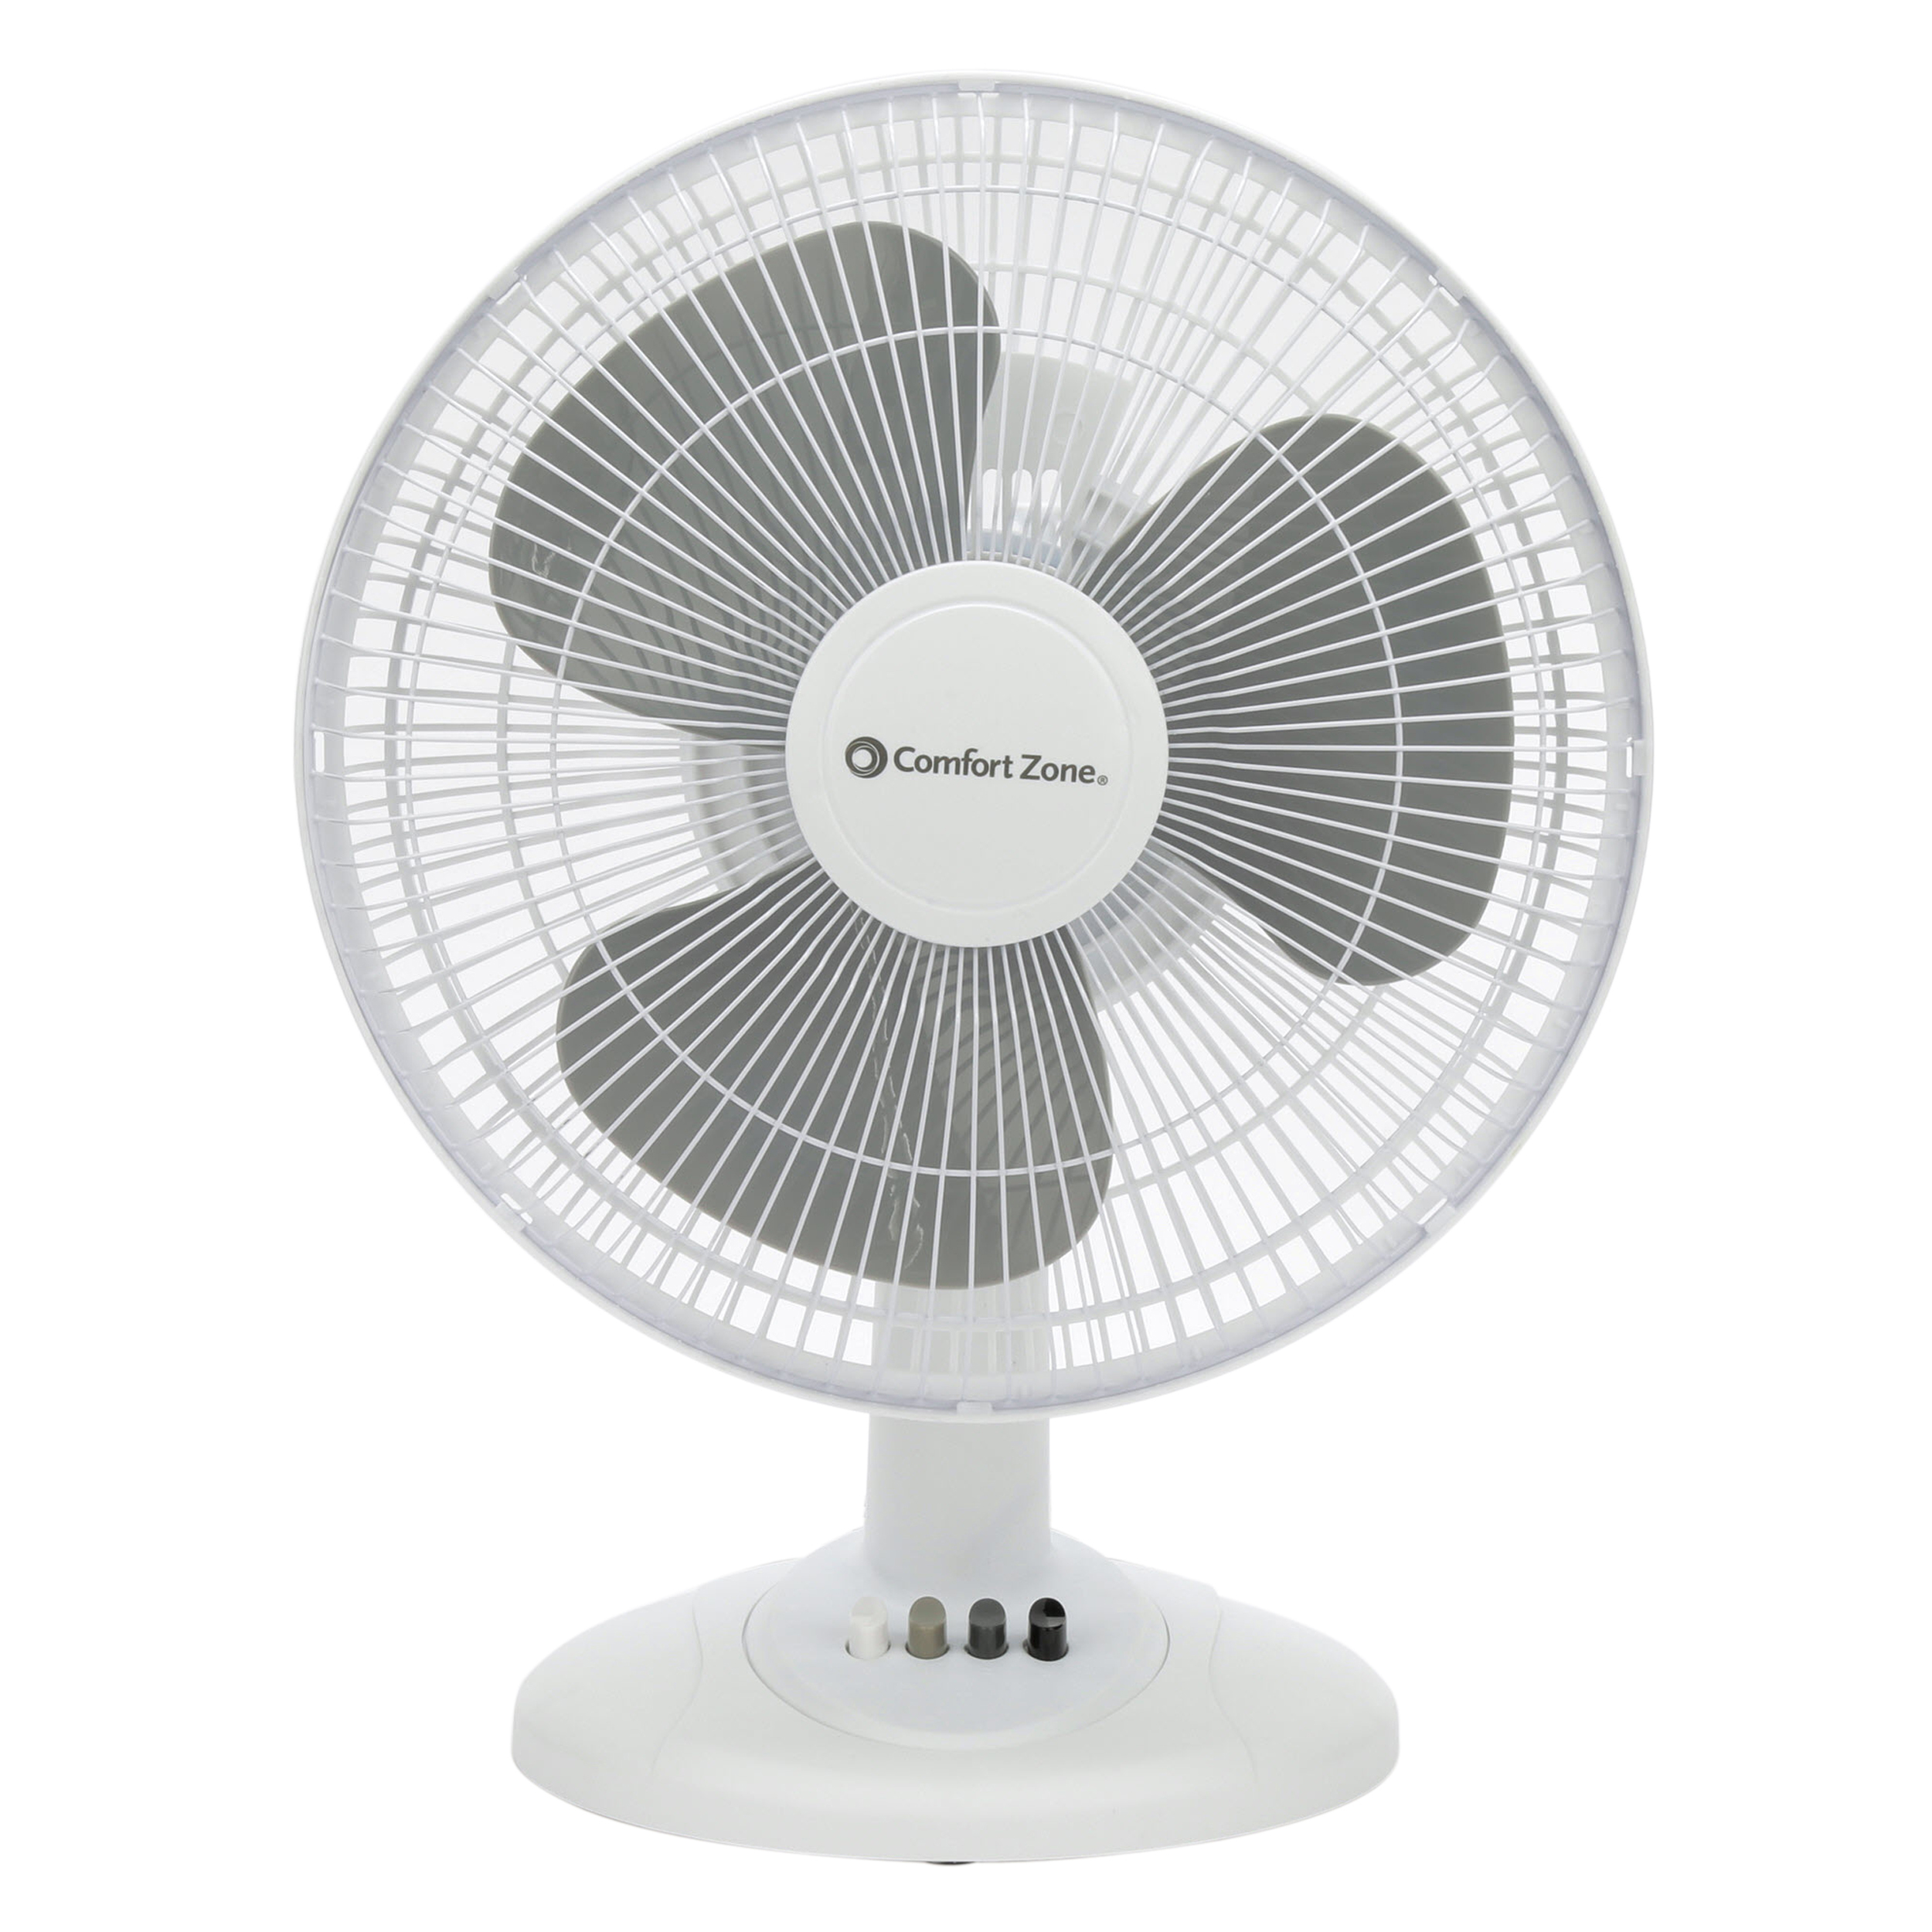 Comfort Zone 12'' Oscillating Table 3-Speed Fan, Model #CZ121, White